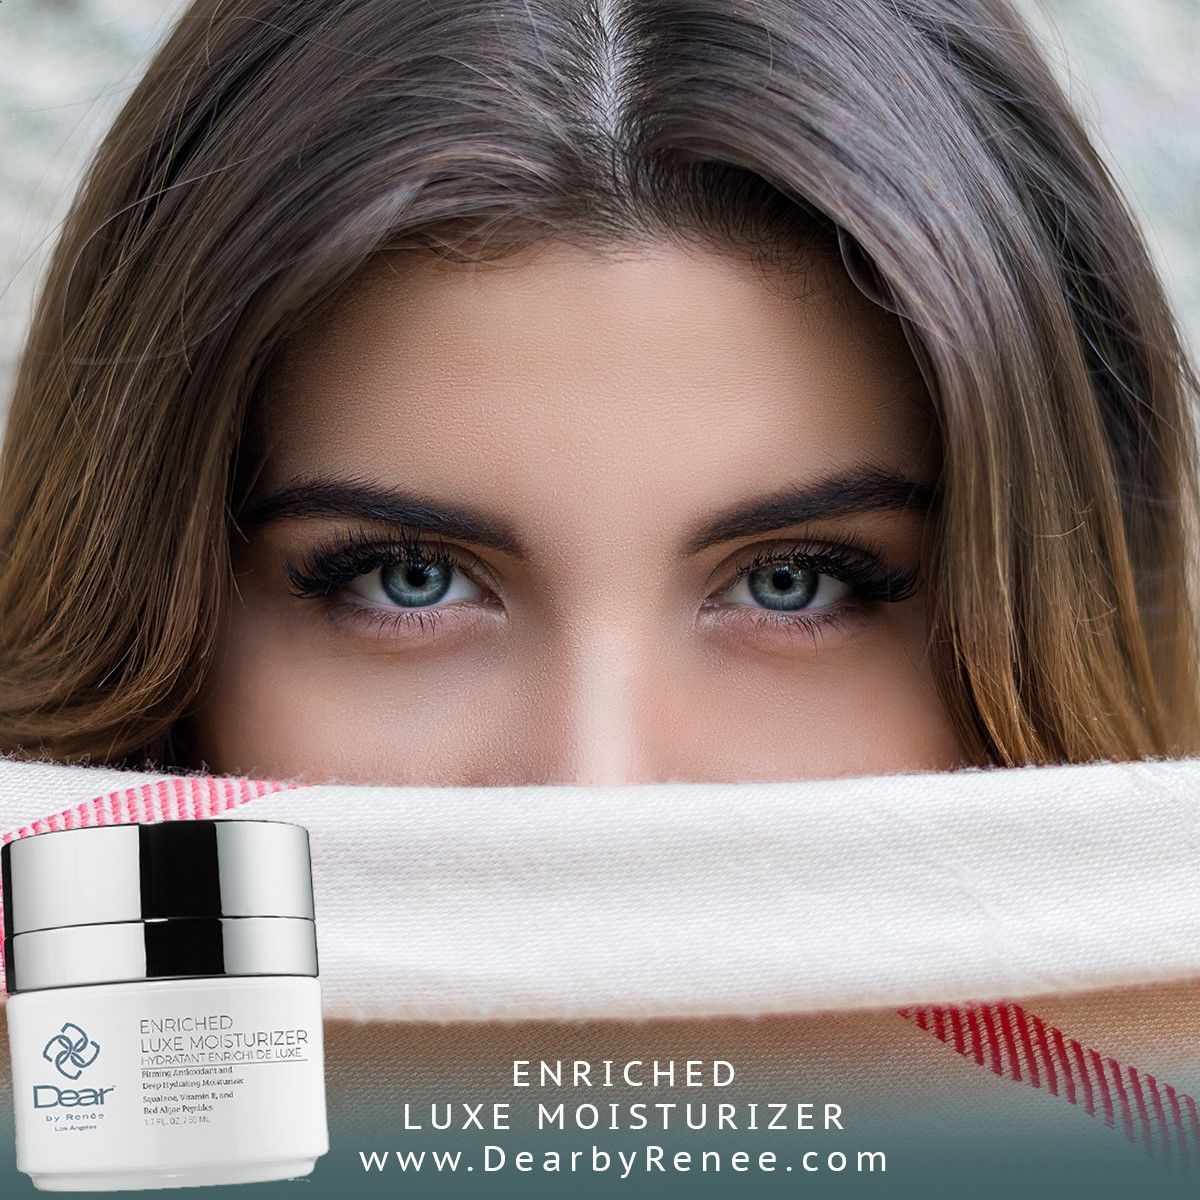 Dear by renee has advanced clinical care skin products do yourself do yourself the favour and stopreverse aging while rejuvenating and renewing your skin skin beauty skincare makeup health face model facewash solutioingenieria Choice Image